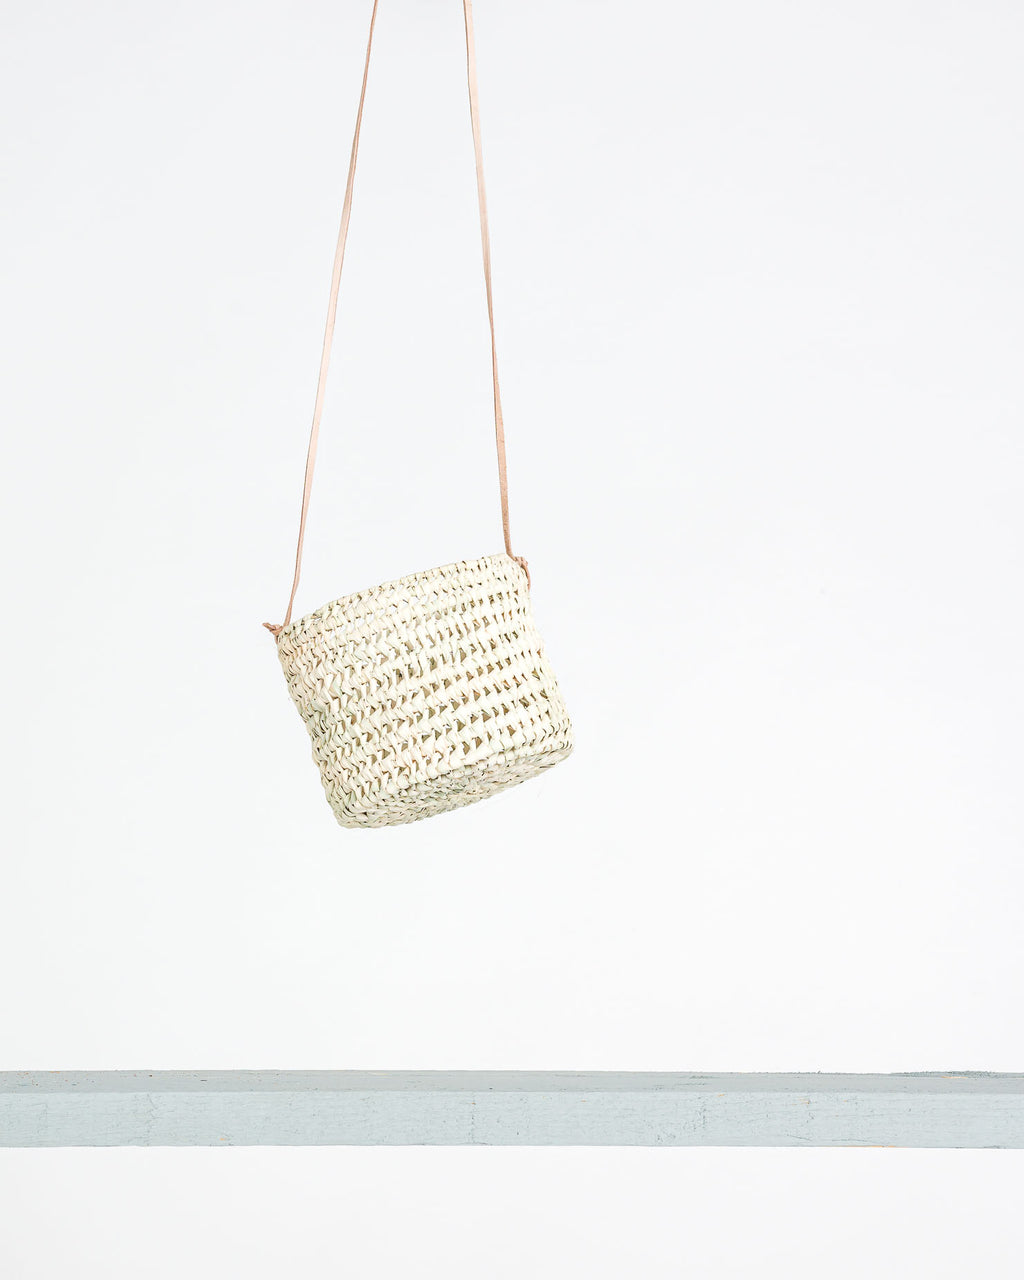 Bohemia Design  // Hanging Wave Basket S